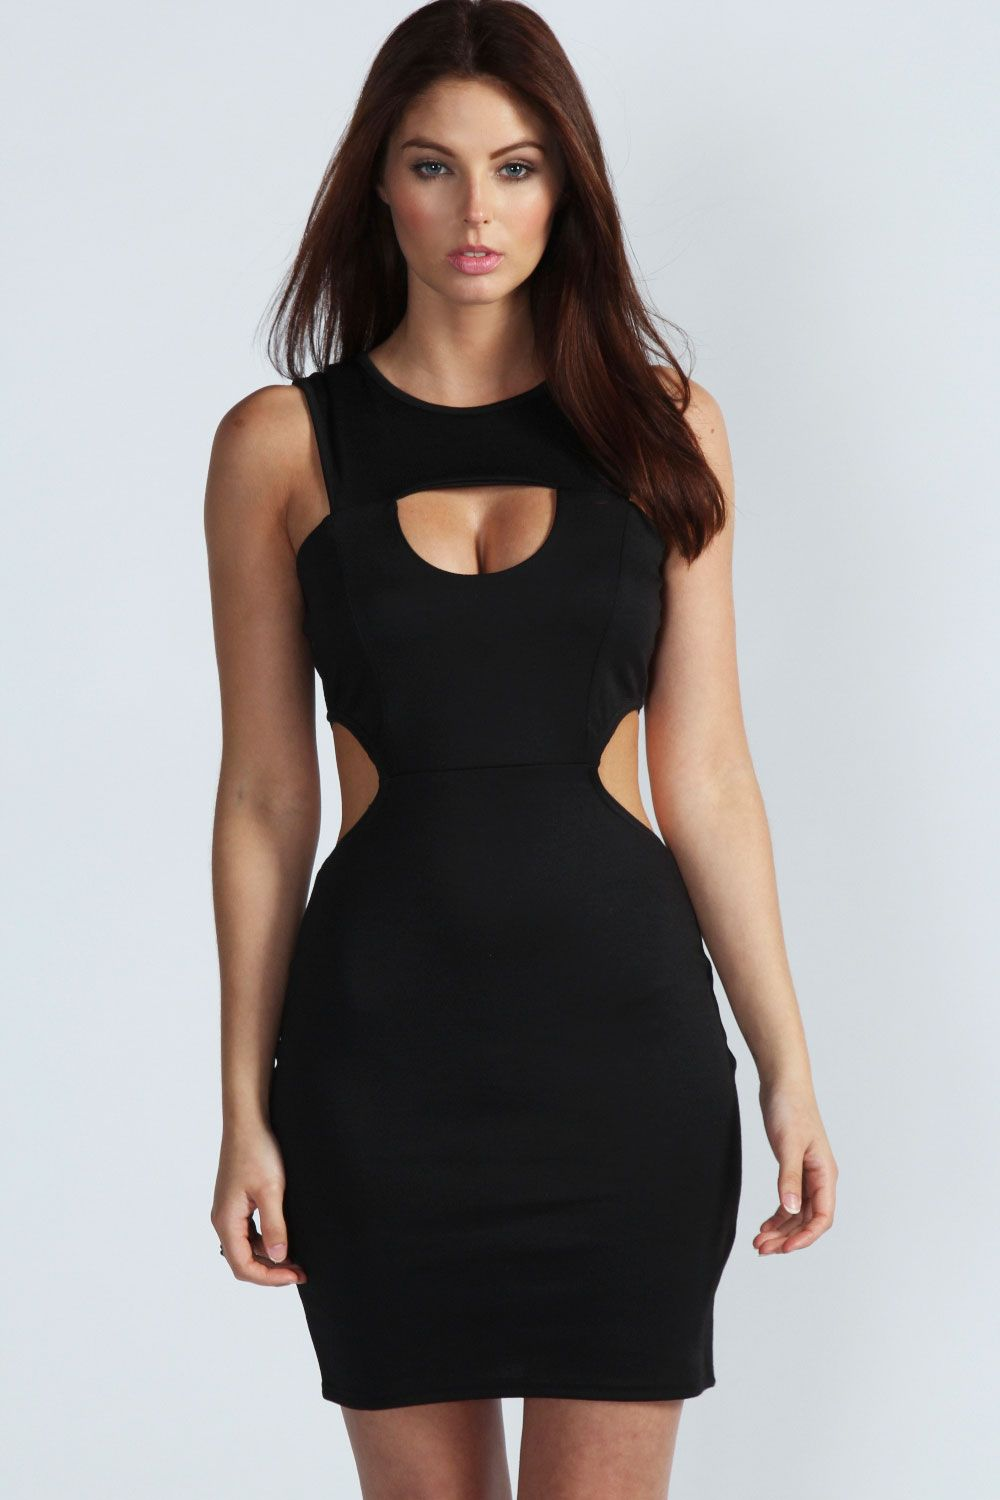 Black dress bodycon cutout